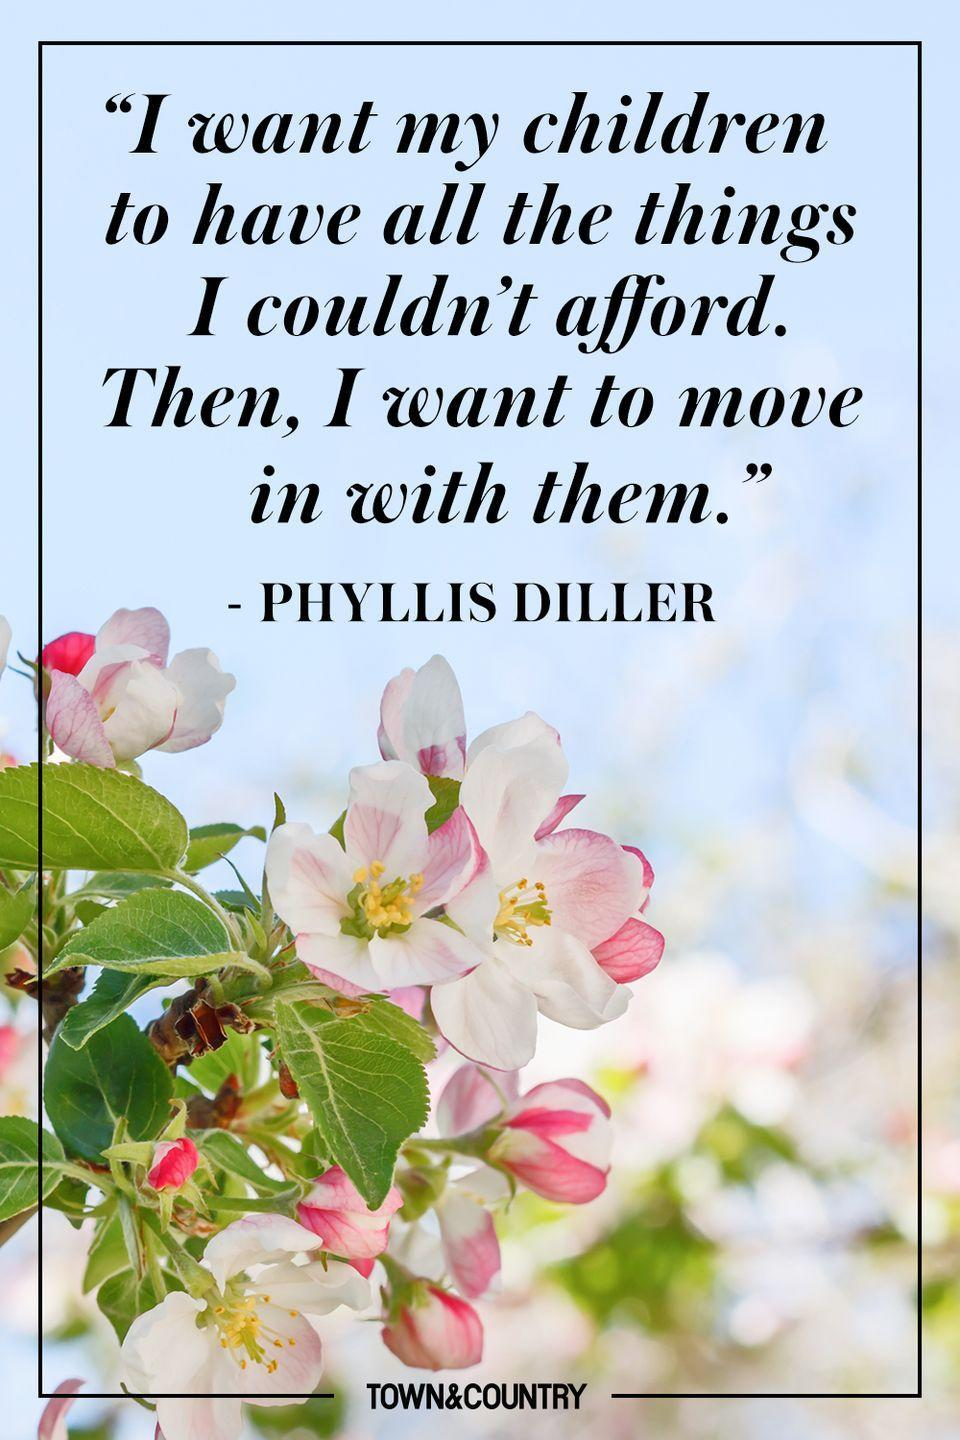 """<p>""""I want my children to have all the things I couldn't afford. Then, I want to move in with them.""""</p><p>- Phyllis Diller</p>"""